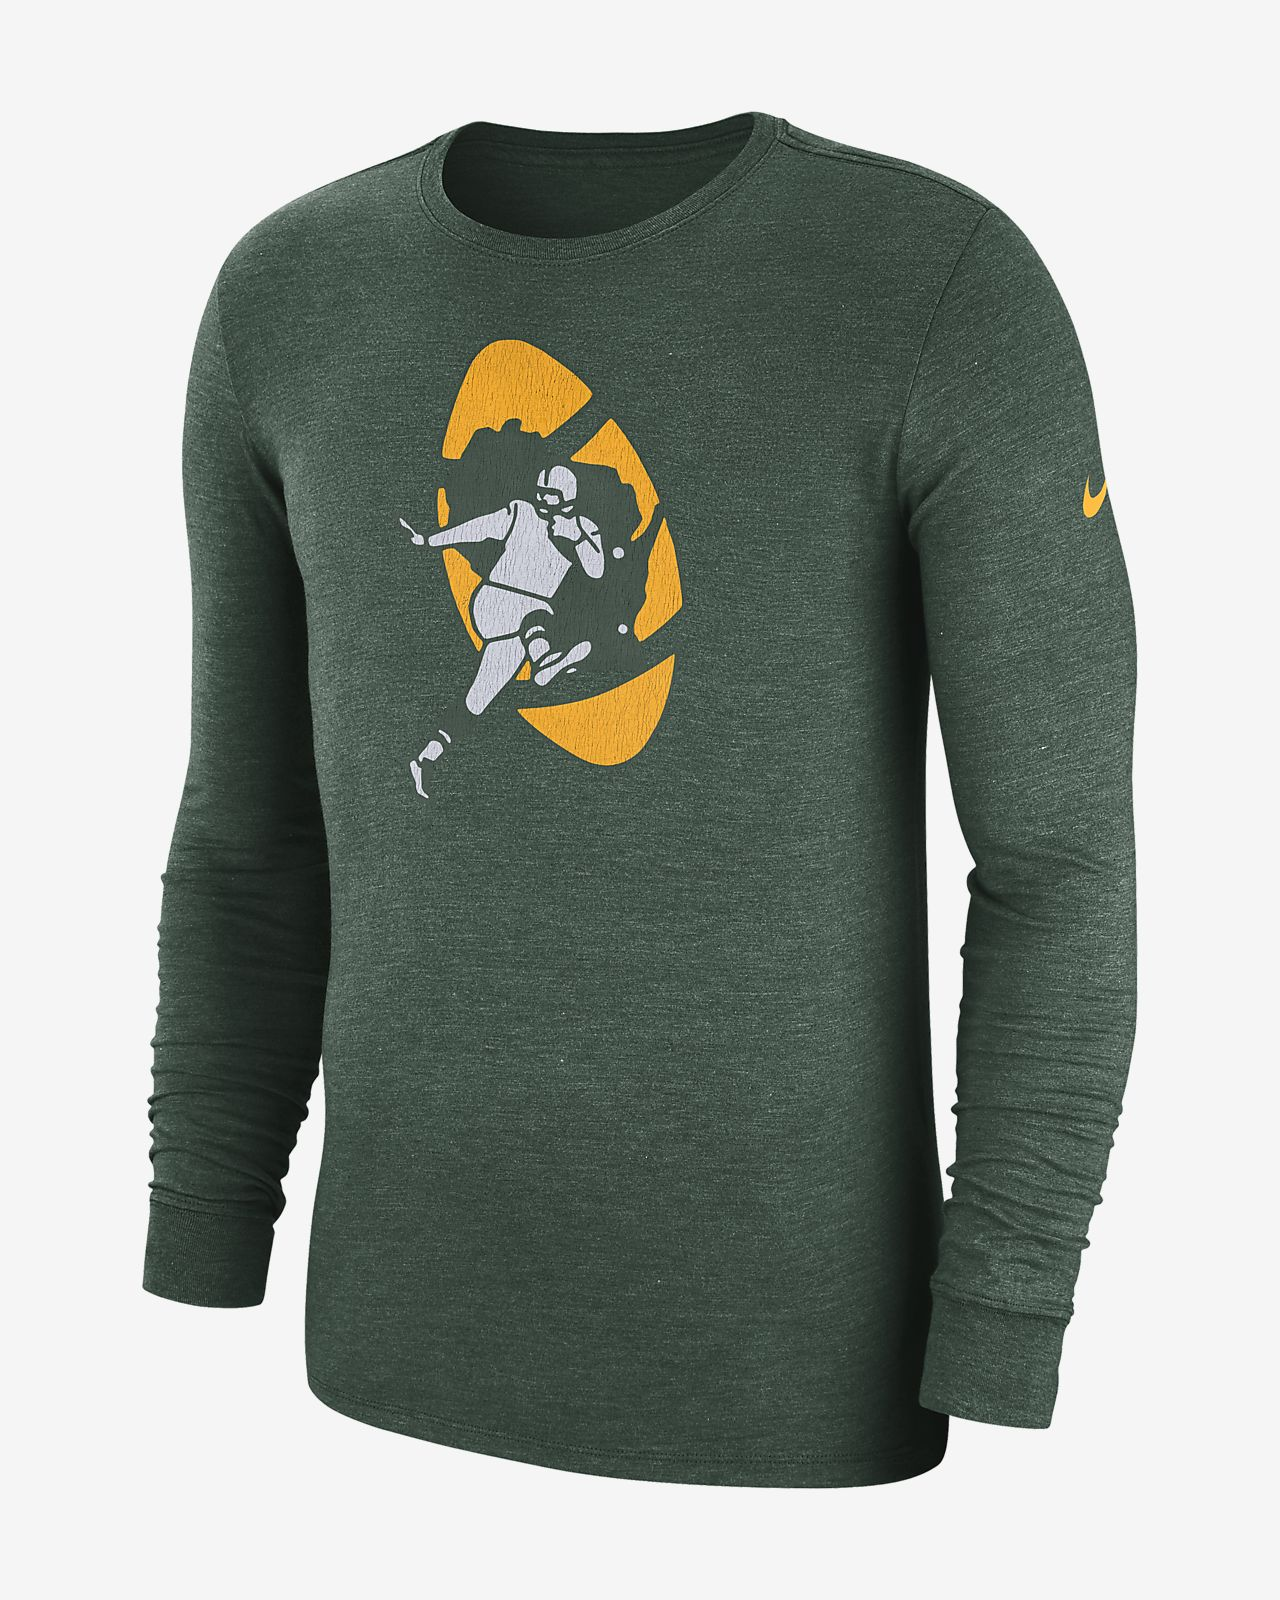 Nike (NFL Packers) Men's Tri-Blend Long-Sleeve T-Shirt